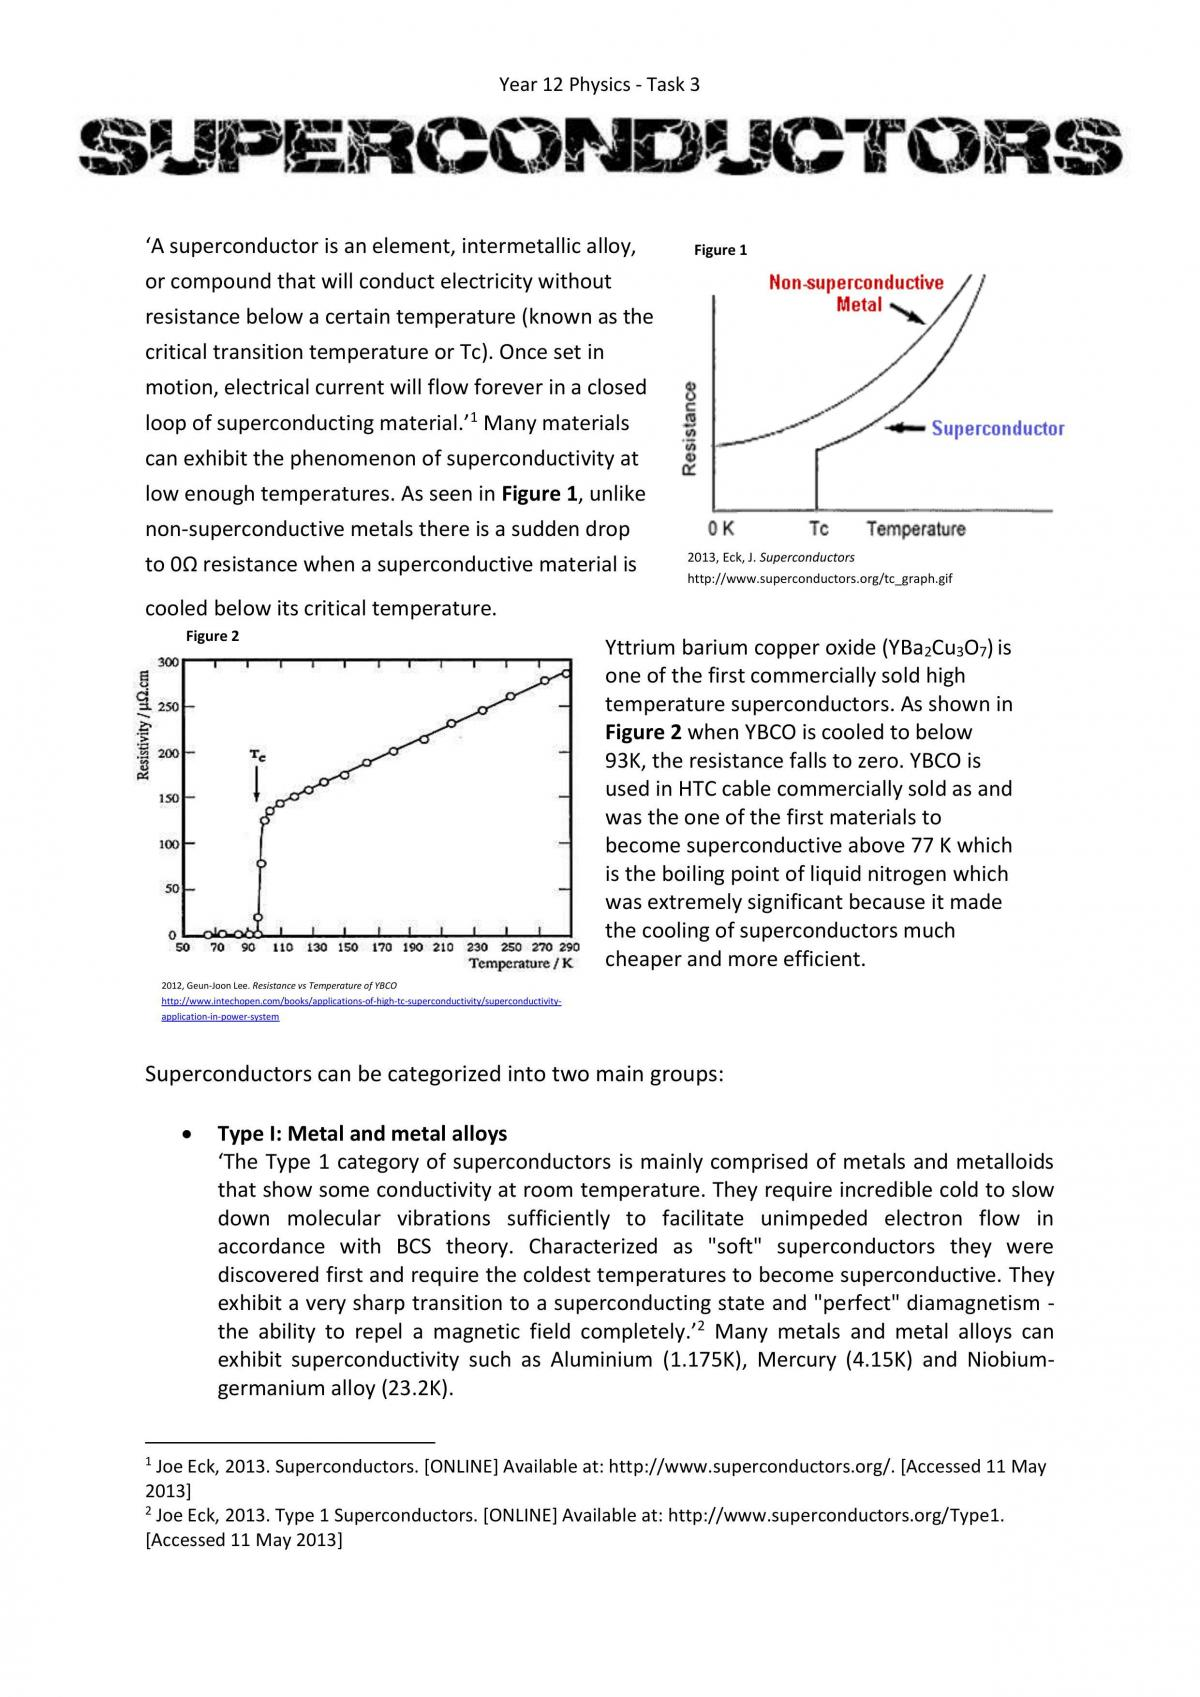 Superconductors - Page 1